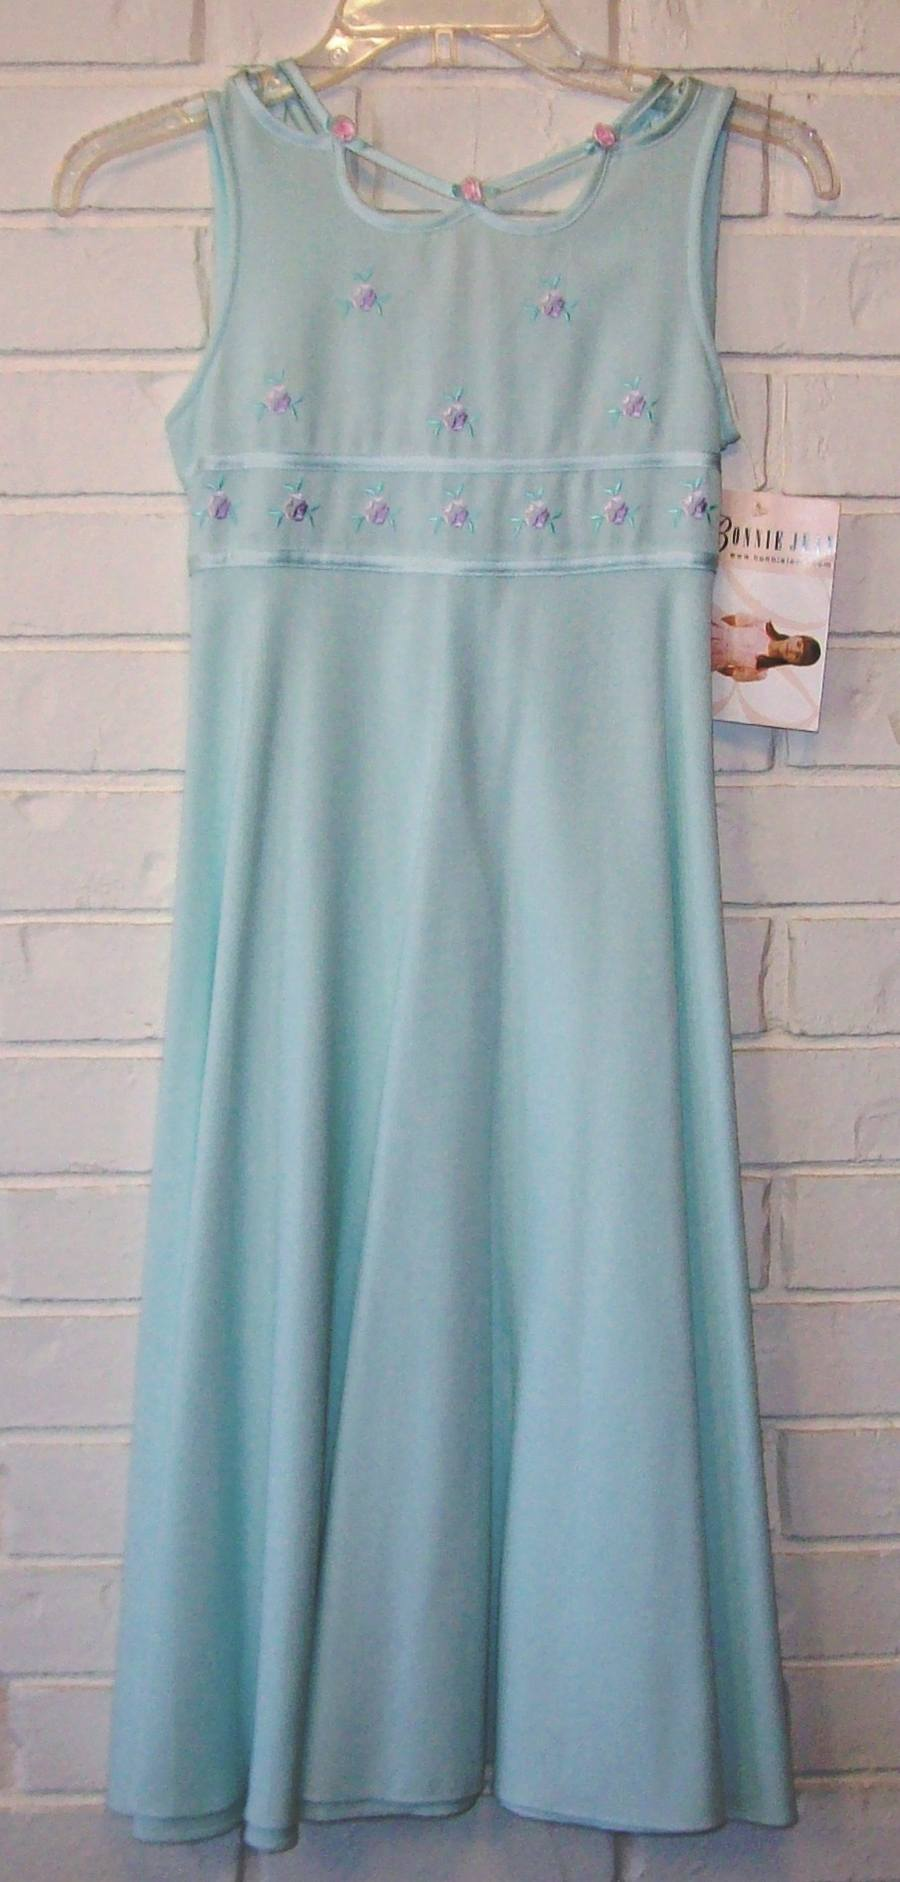 Bonnie Jean Girls Size 10 Light Teal Easter Holiday Party Dress NWTS ...